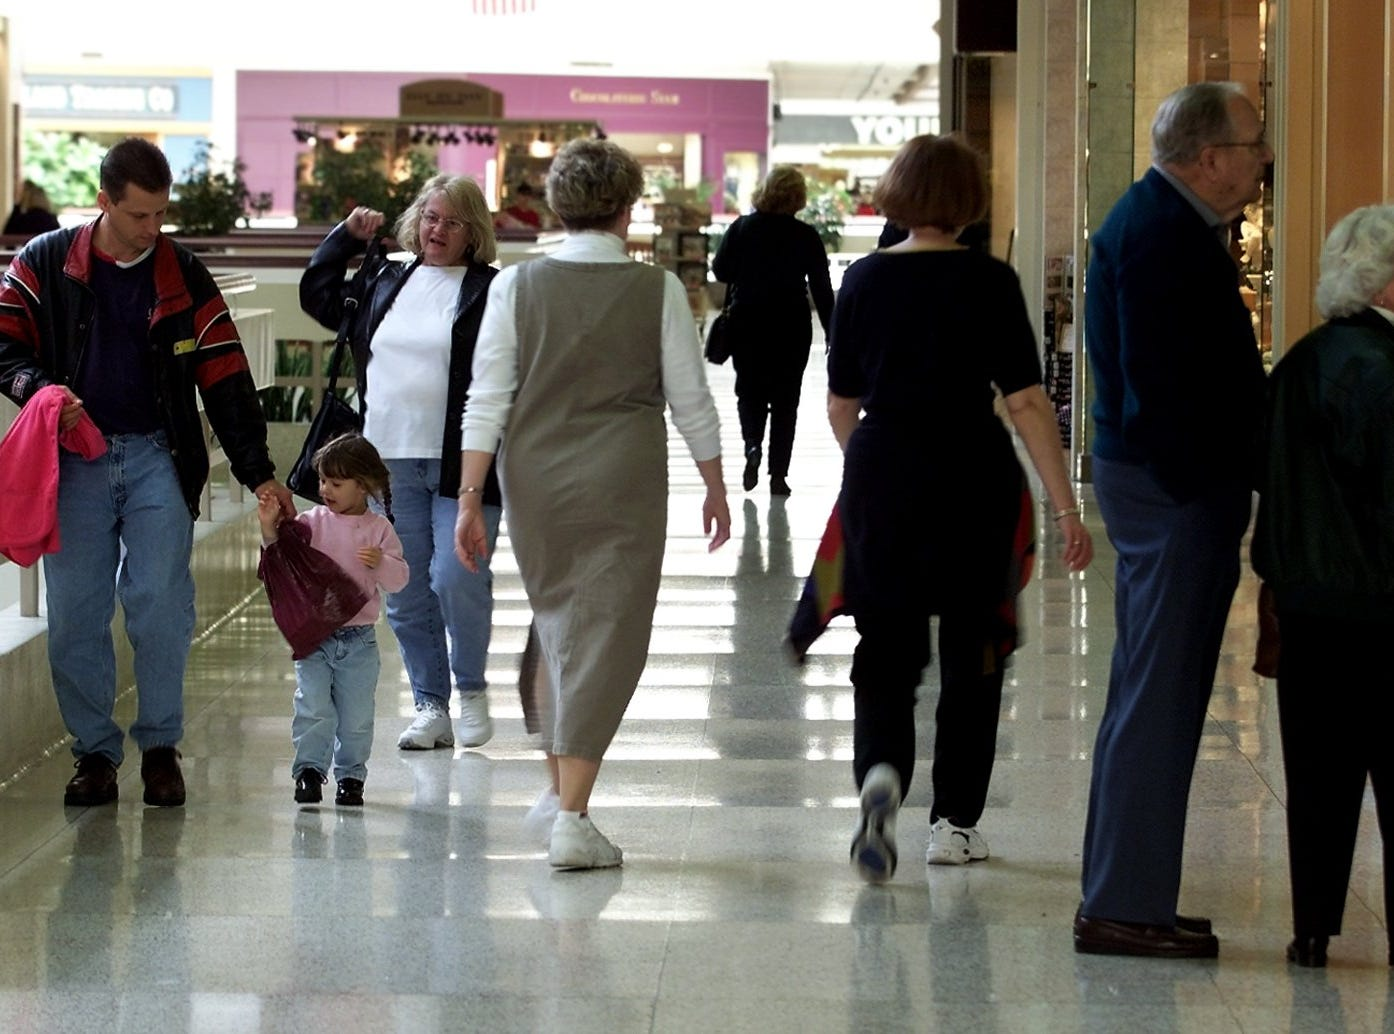 Shoppers at Valley West Mall in West Des Moines on Oct. 16, 2011.